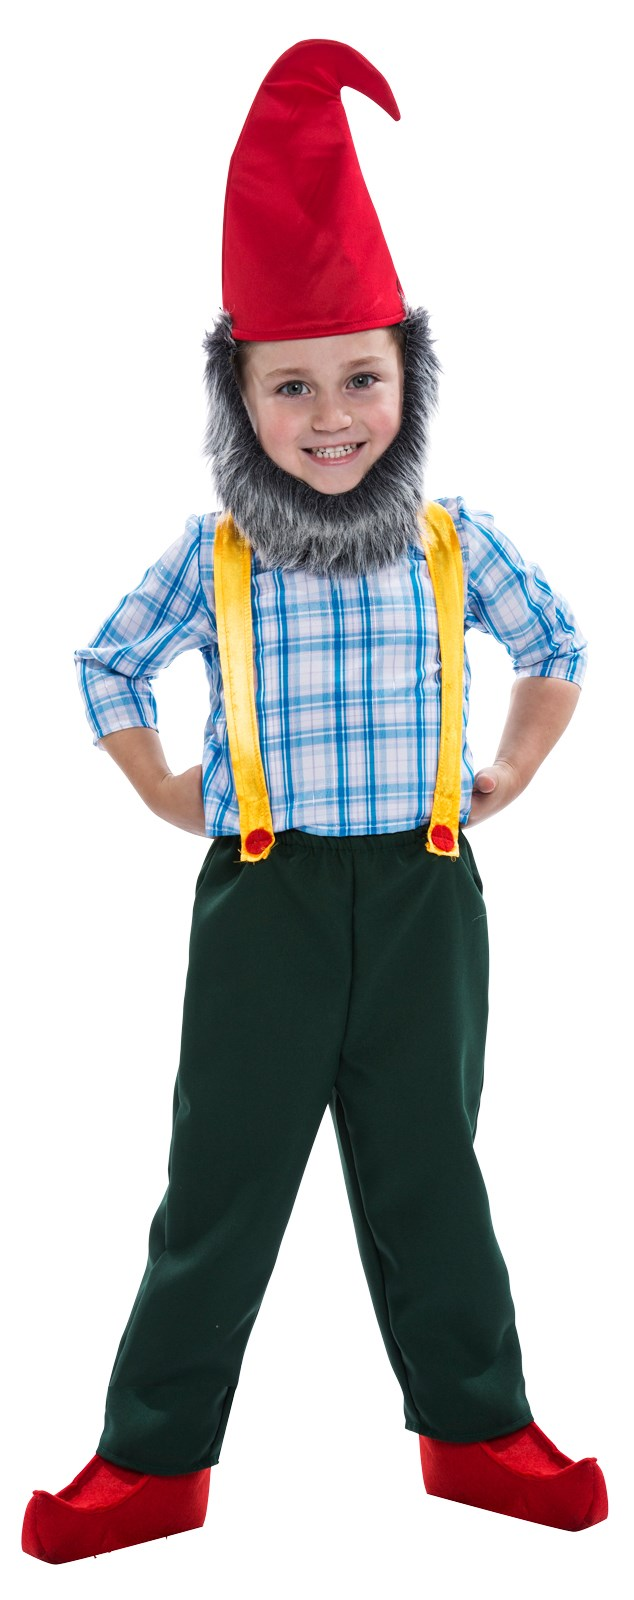 Gnome Costume for Boys | BuyCostumes.com